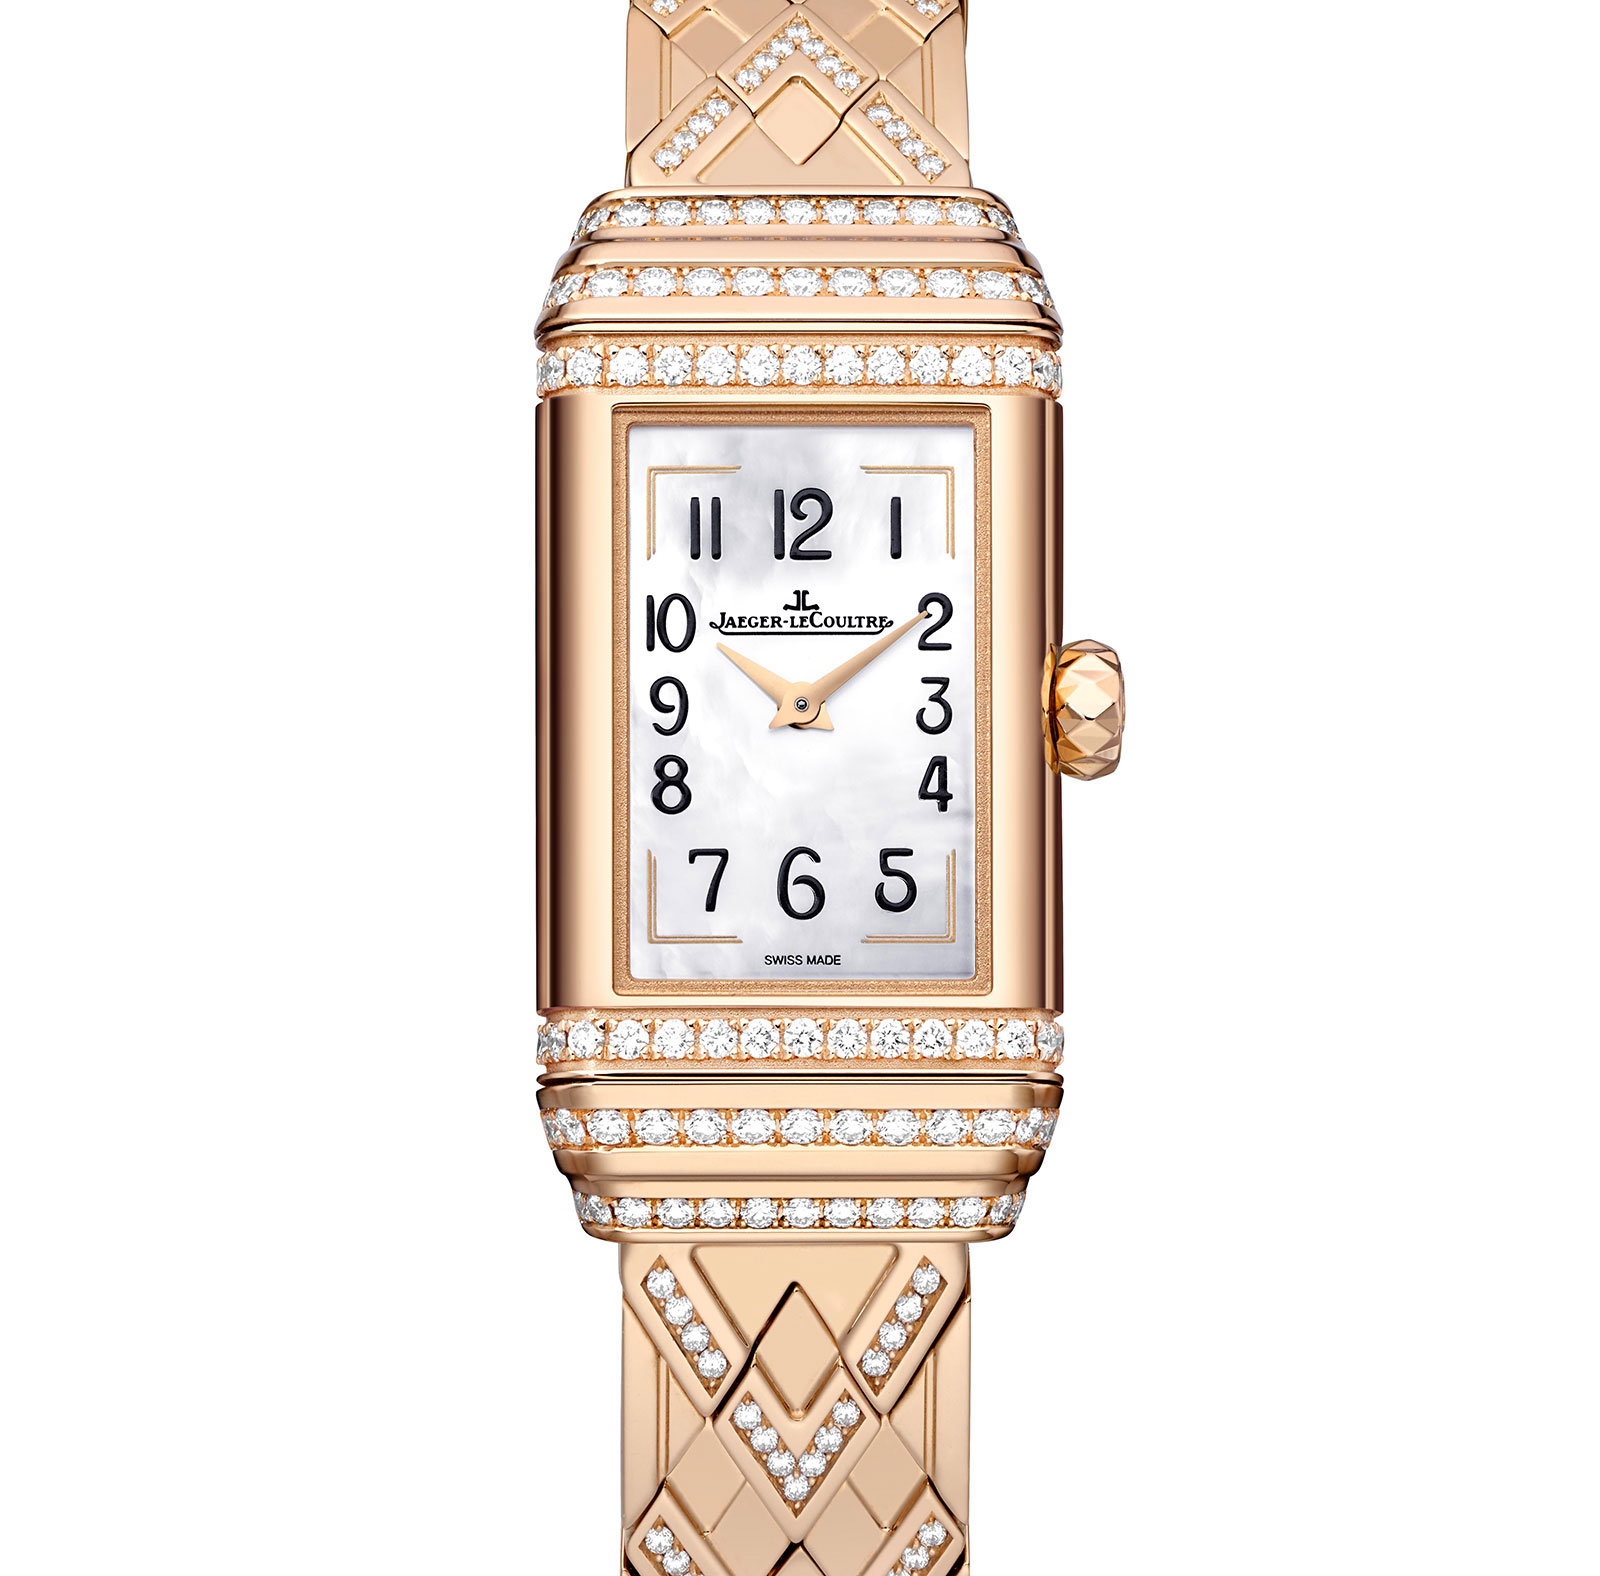 Jaeger-LeCoultre Reverso One Duetto Jewelry 1